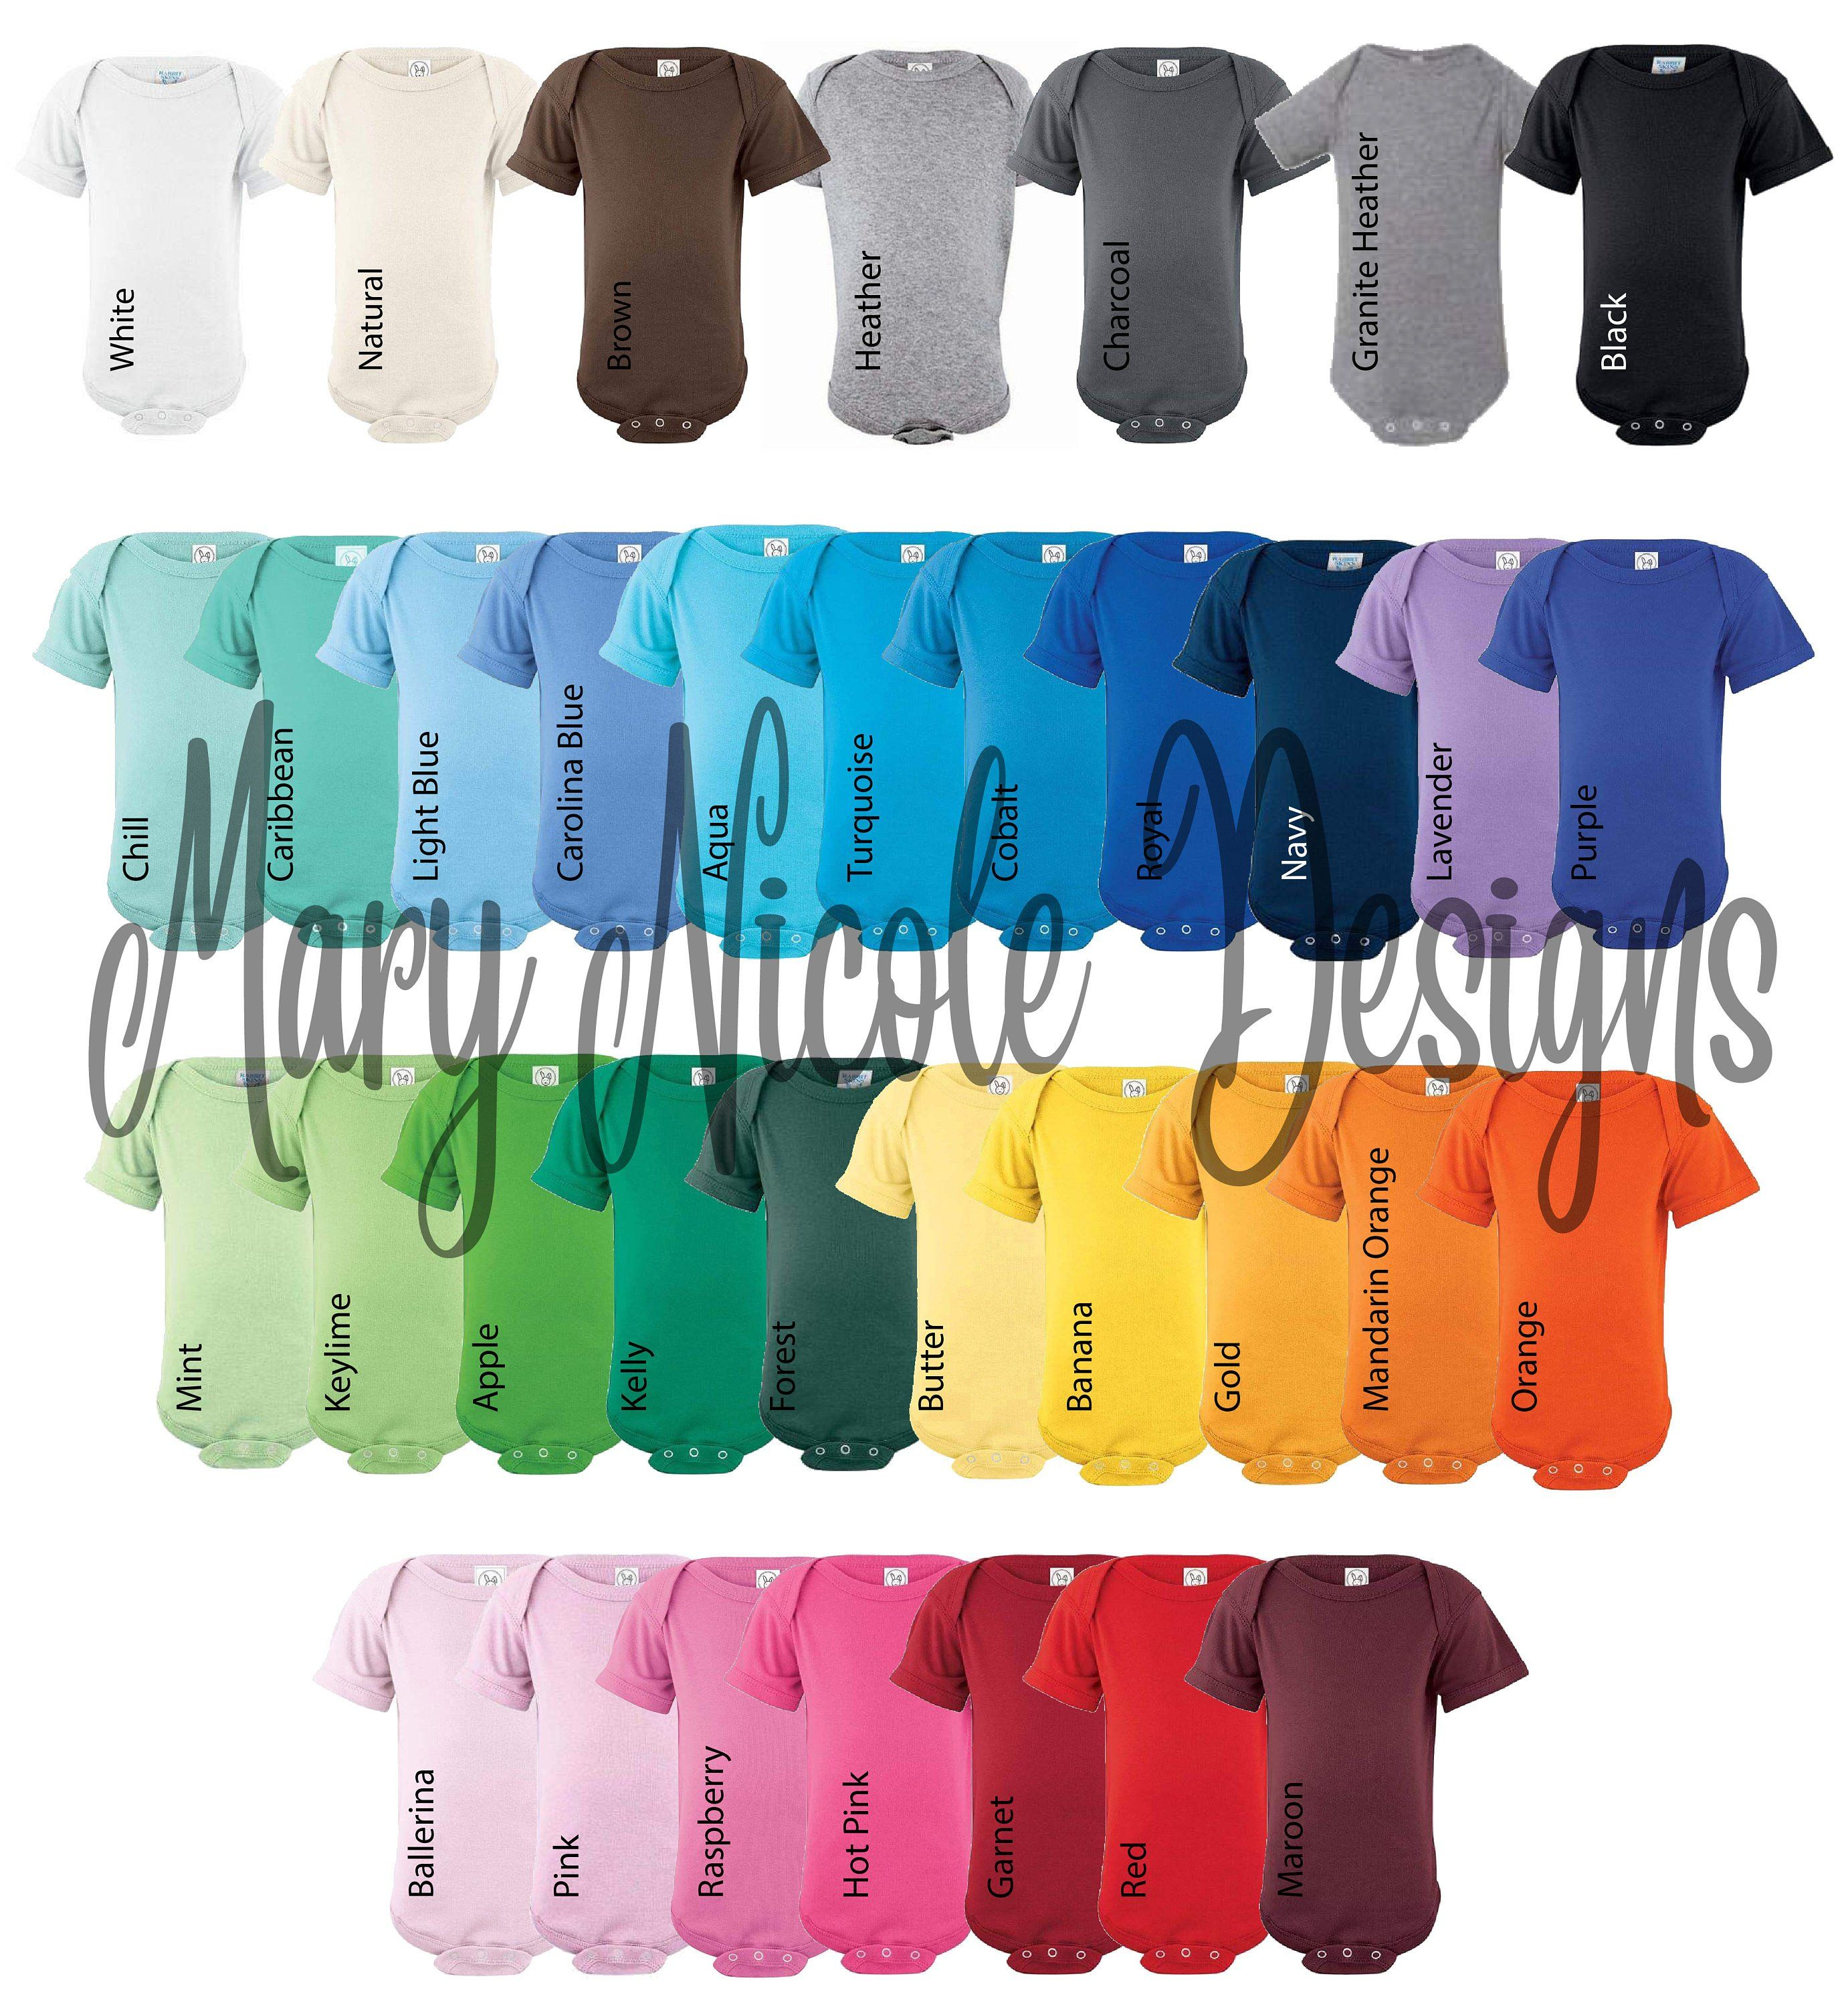 Every Color Digital File Shirt Color Chart Rabbit Skins 4400 Bodysuit Color Chart Etsy Color Chart Tshirt C Colorful Shirts Tshirt Colors Color Chart